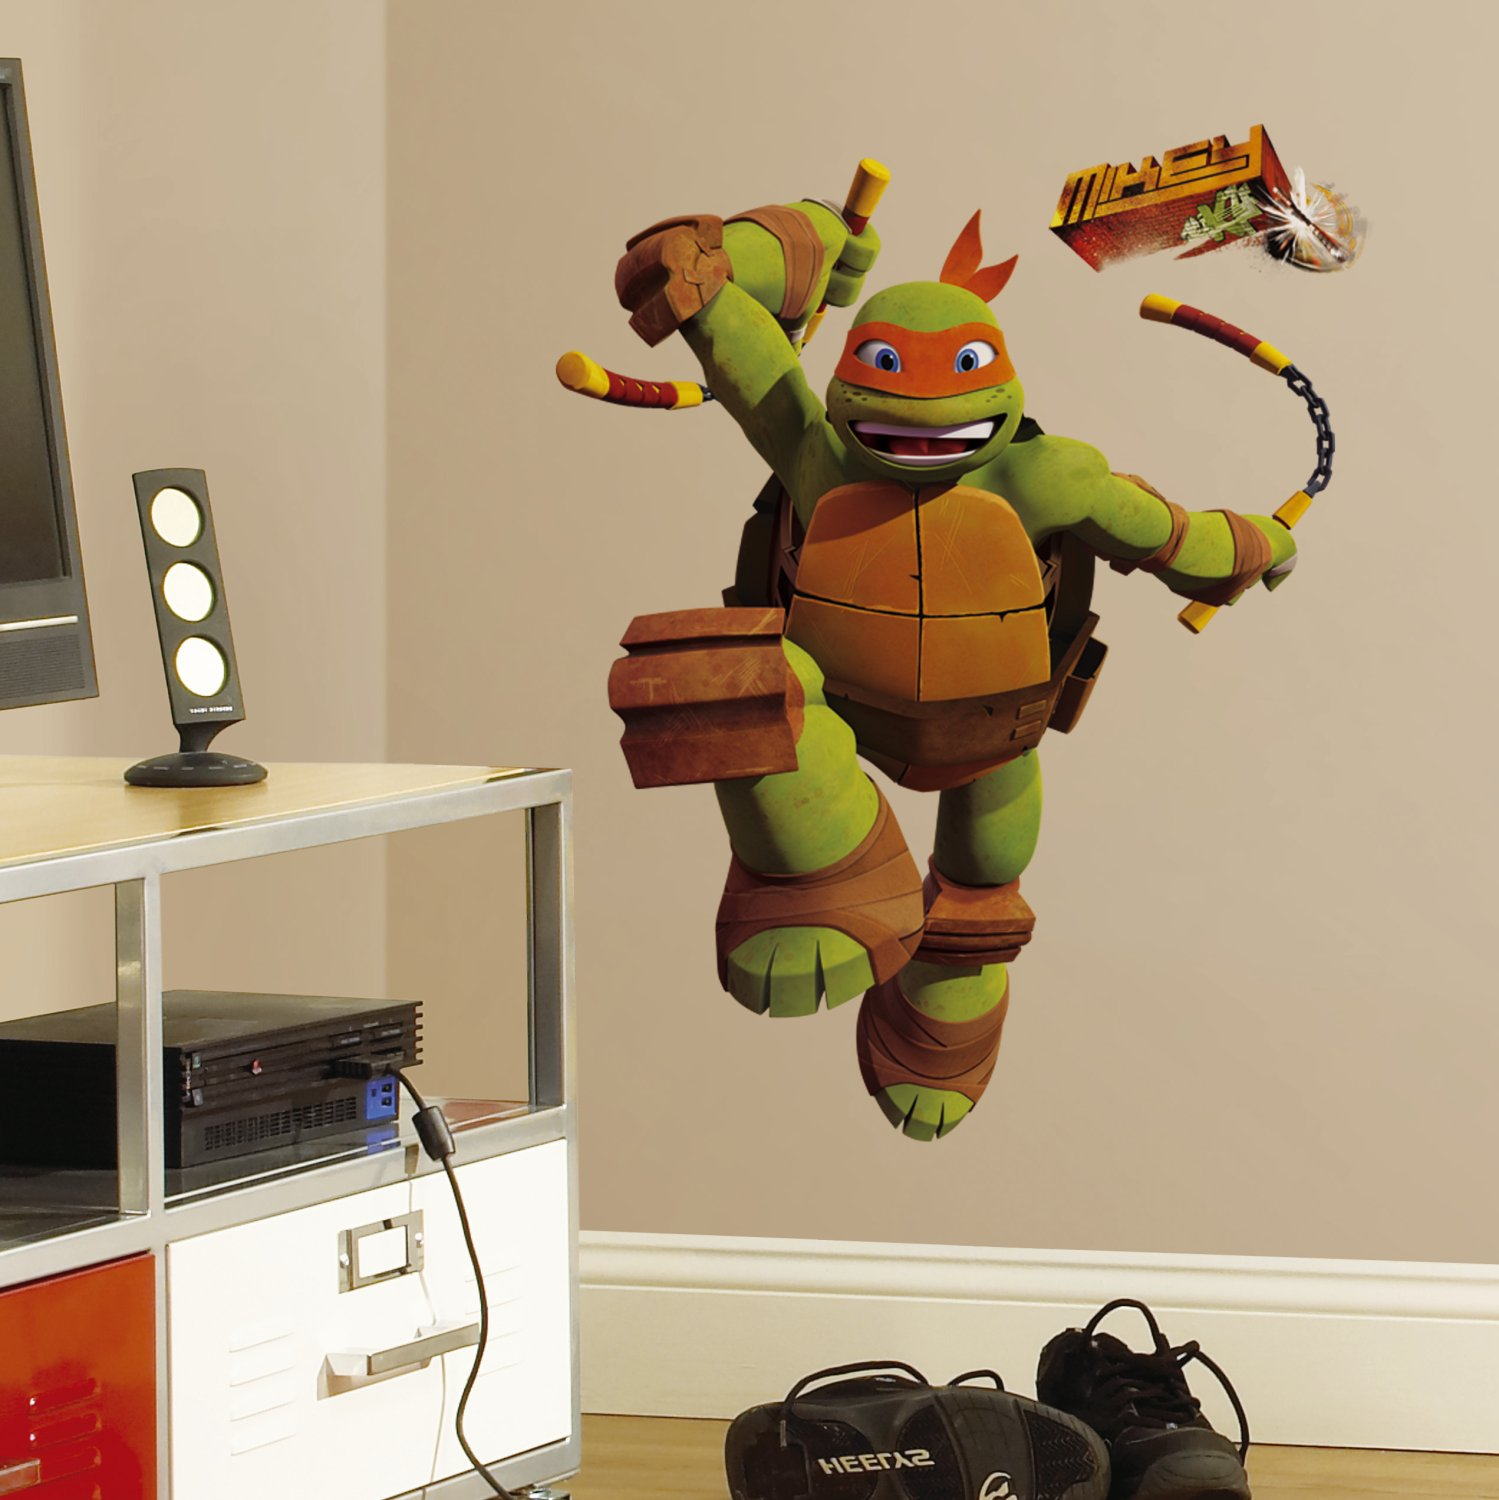 Roommates rmk2250gm teenage mutant ninja turtles mike peel and roommates rmk2250gm teenage mutant ninja turtles mike peel and stick giant wall decals decorative wall appliques amazon amipublicfo Image collections